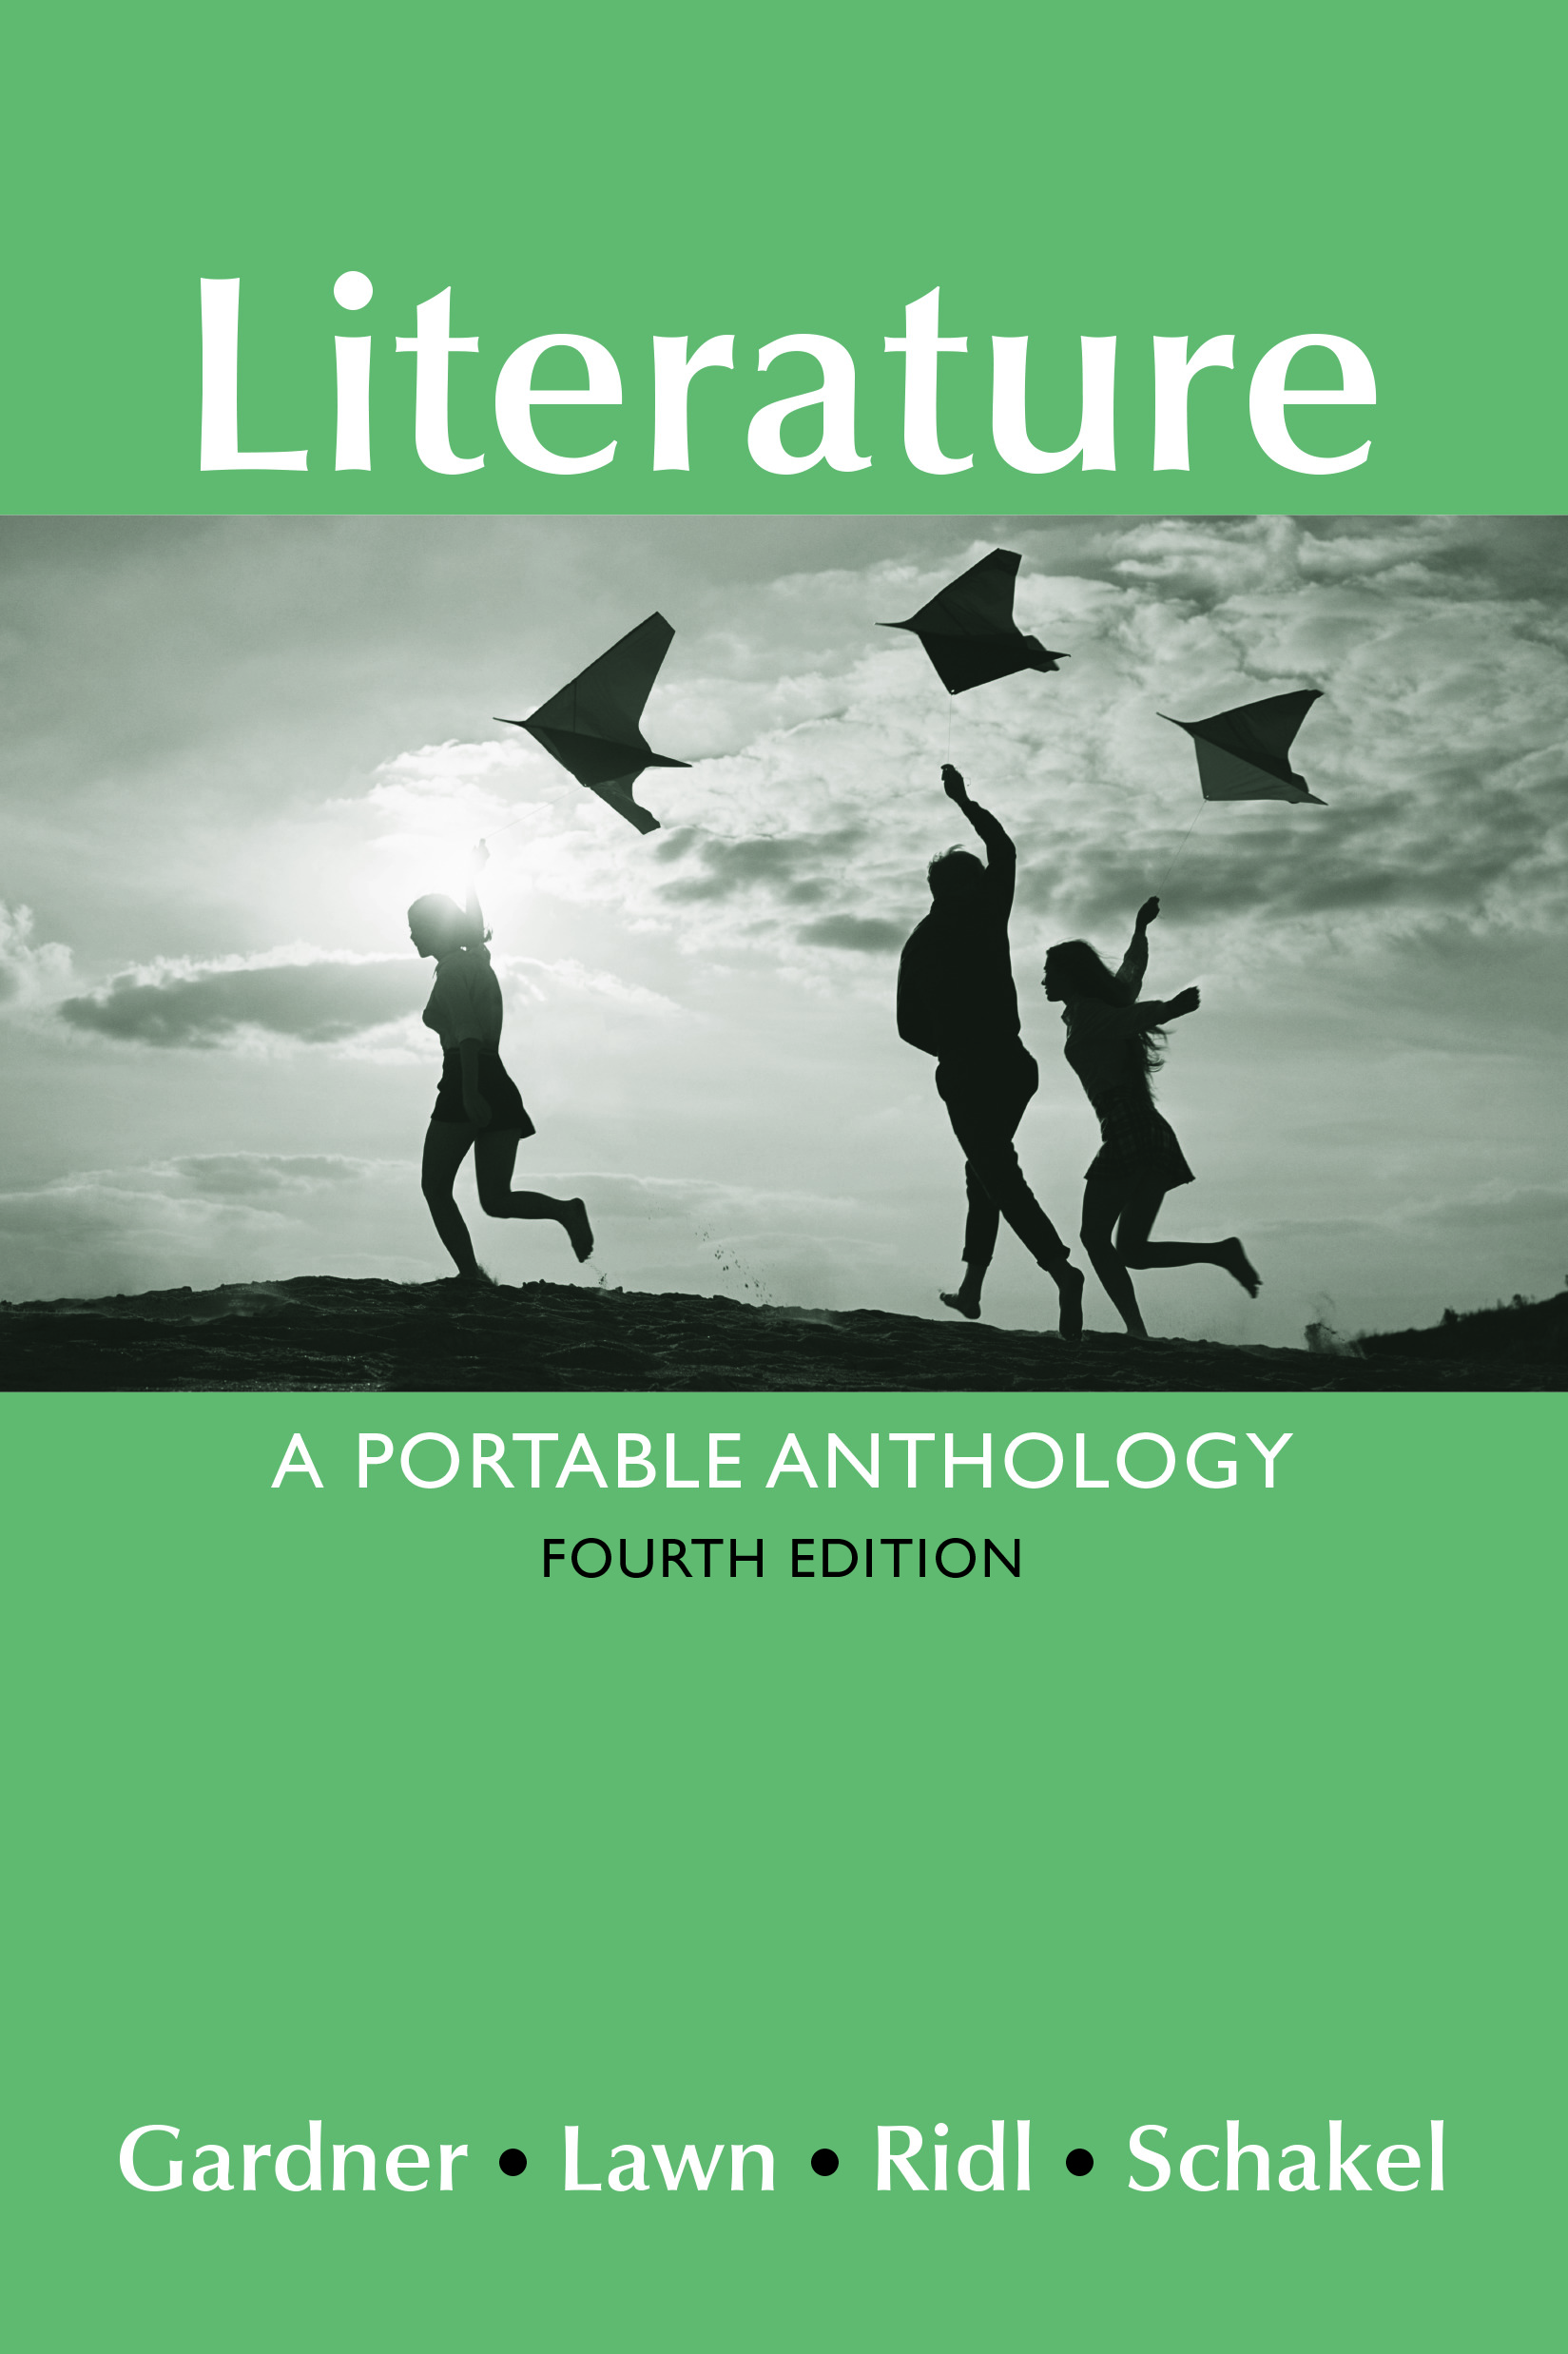 50 essays a portable anthology 4th edition ebook A portable anthology 50 essays: a portable anthology 4th edition epub ebooks for free and about literature a portable anthology 4th edition.